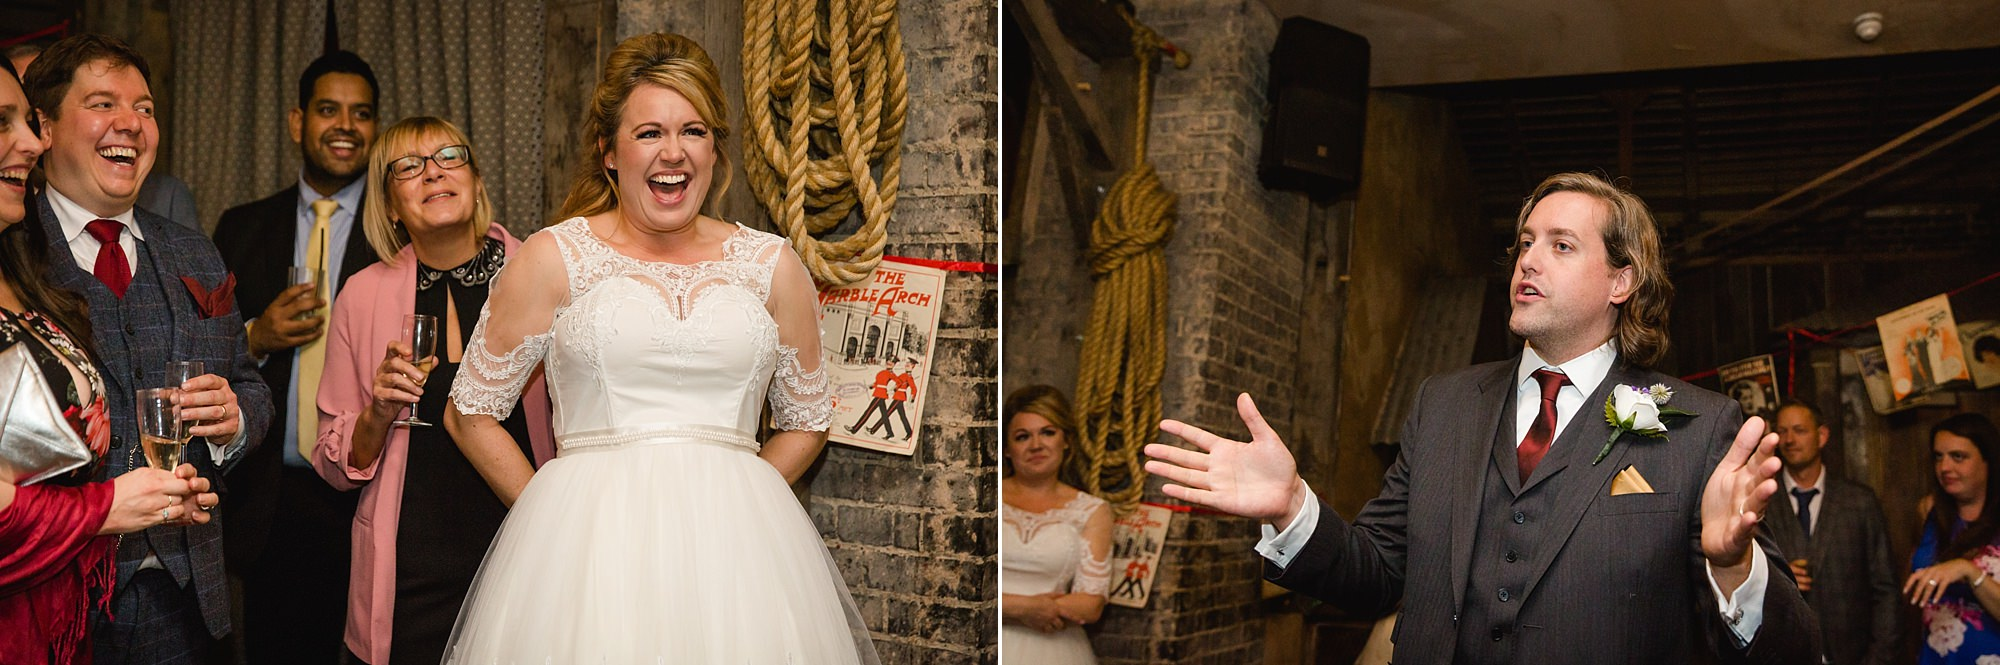 Old Marylebone Town Hall wedding photography bride laughs at groom's speech